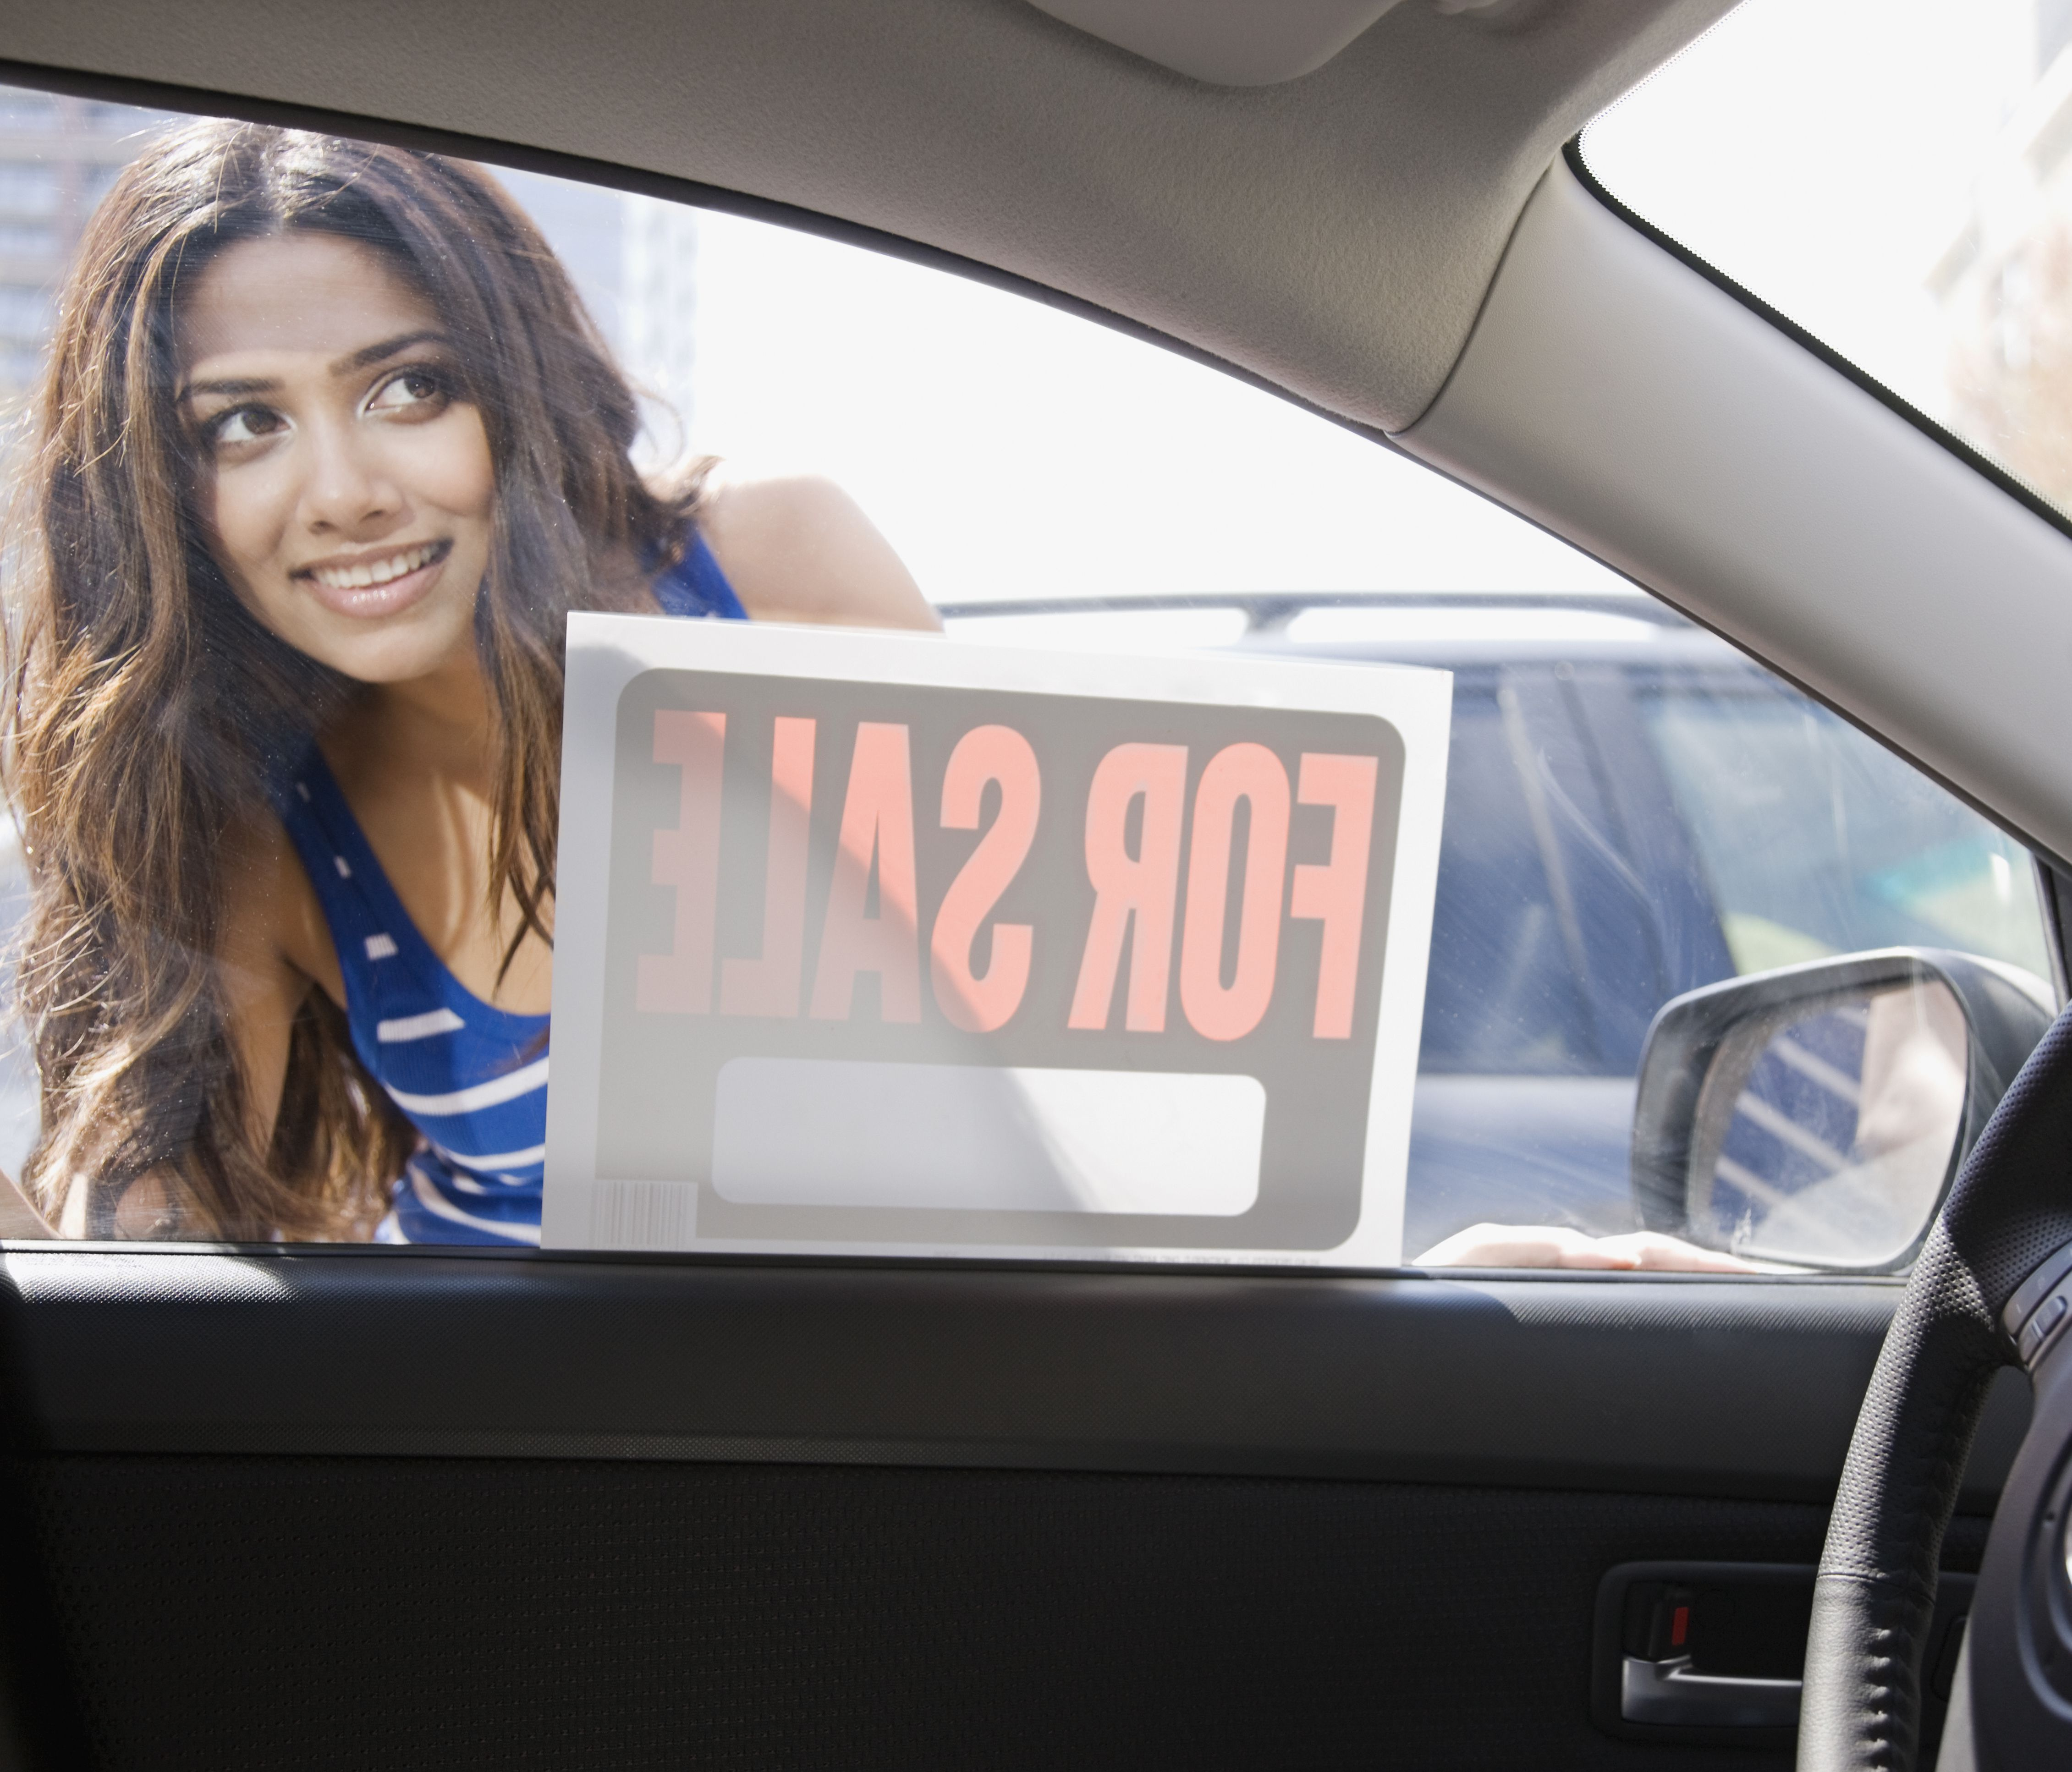 Questions When Buying a Used Car From a Private Seller